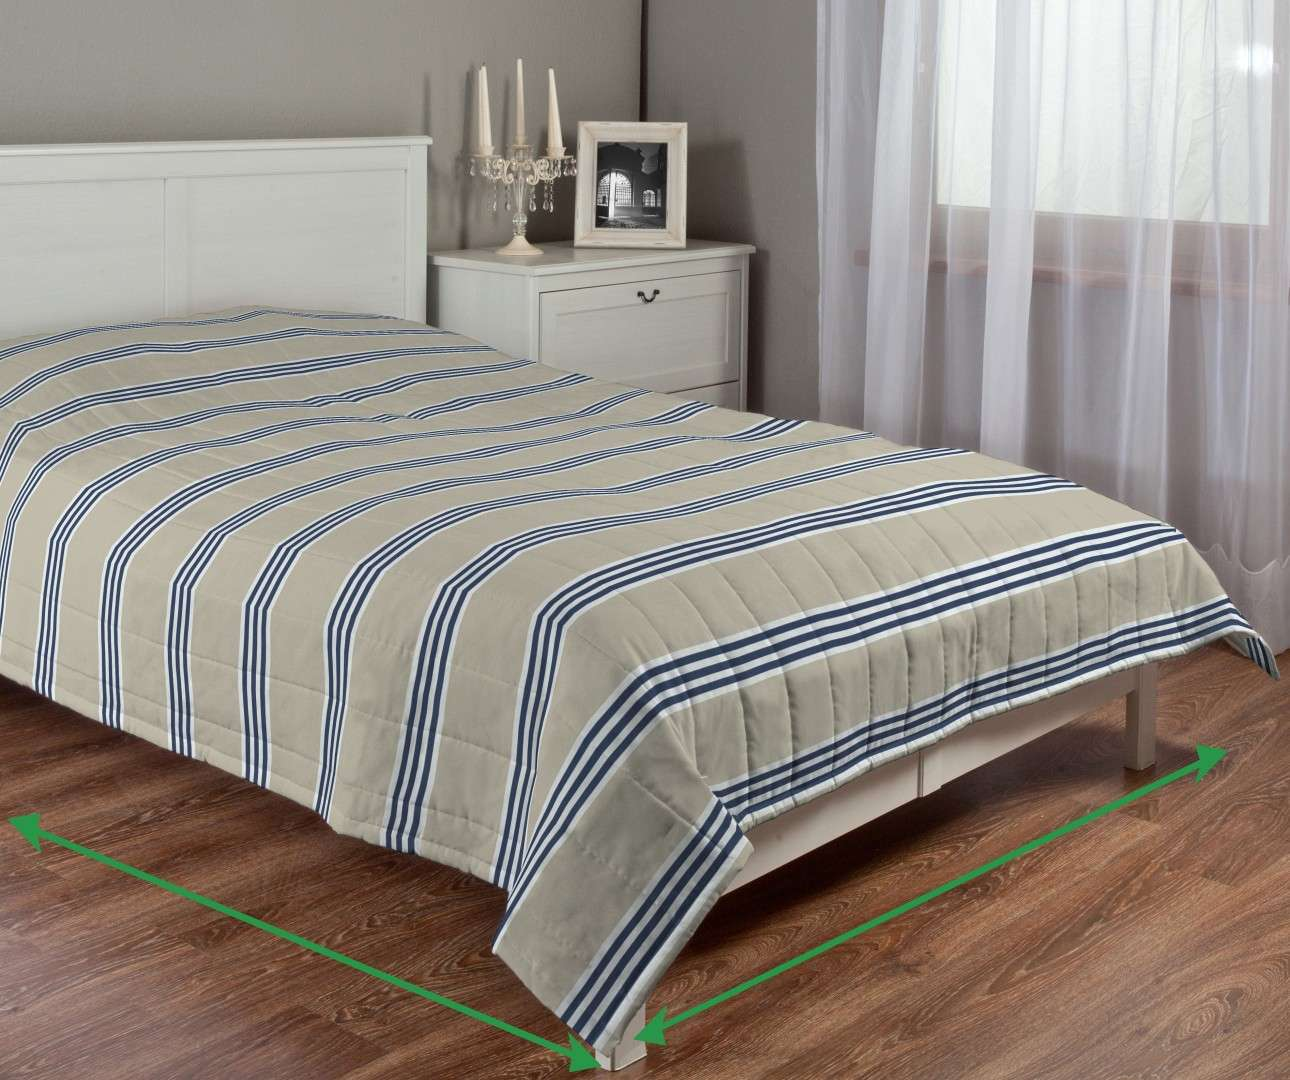 Quilted throw (vertical quilt pattern) in collection Marina, fabric: 140-60